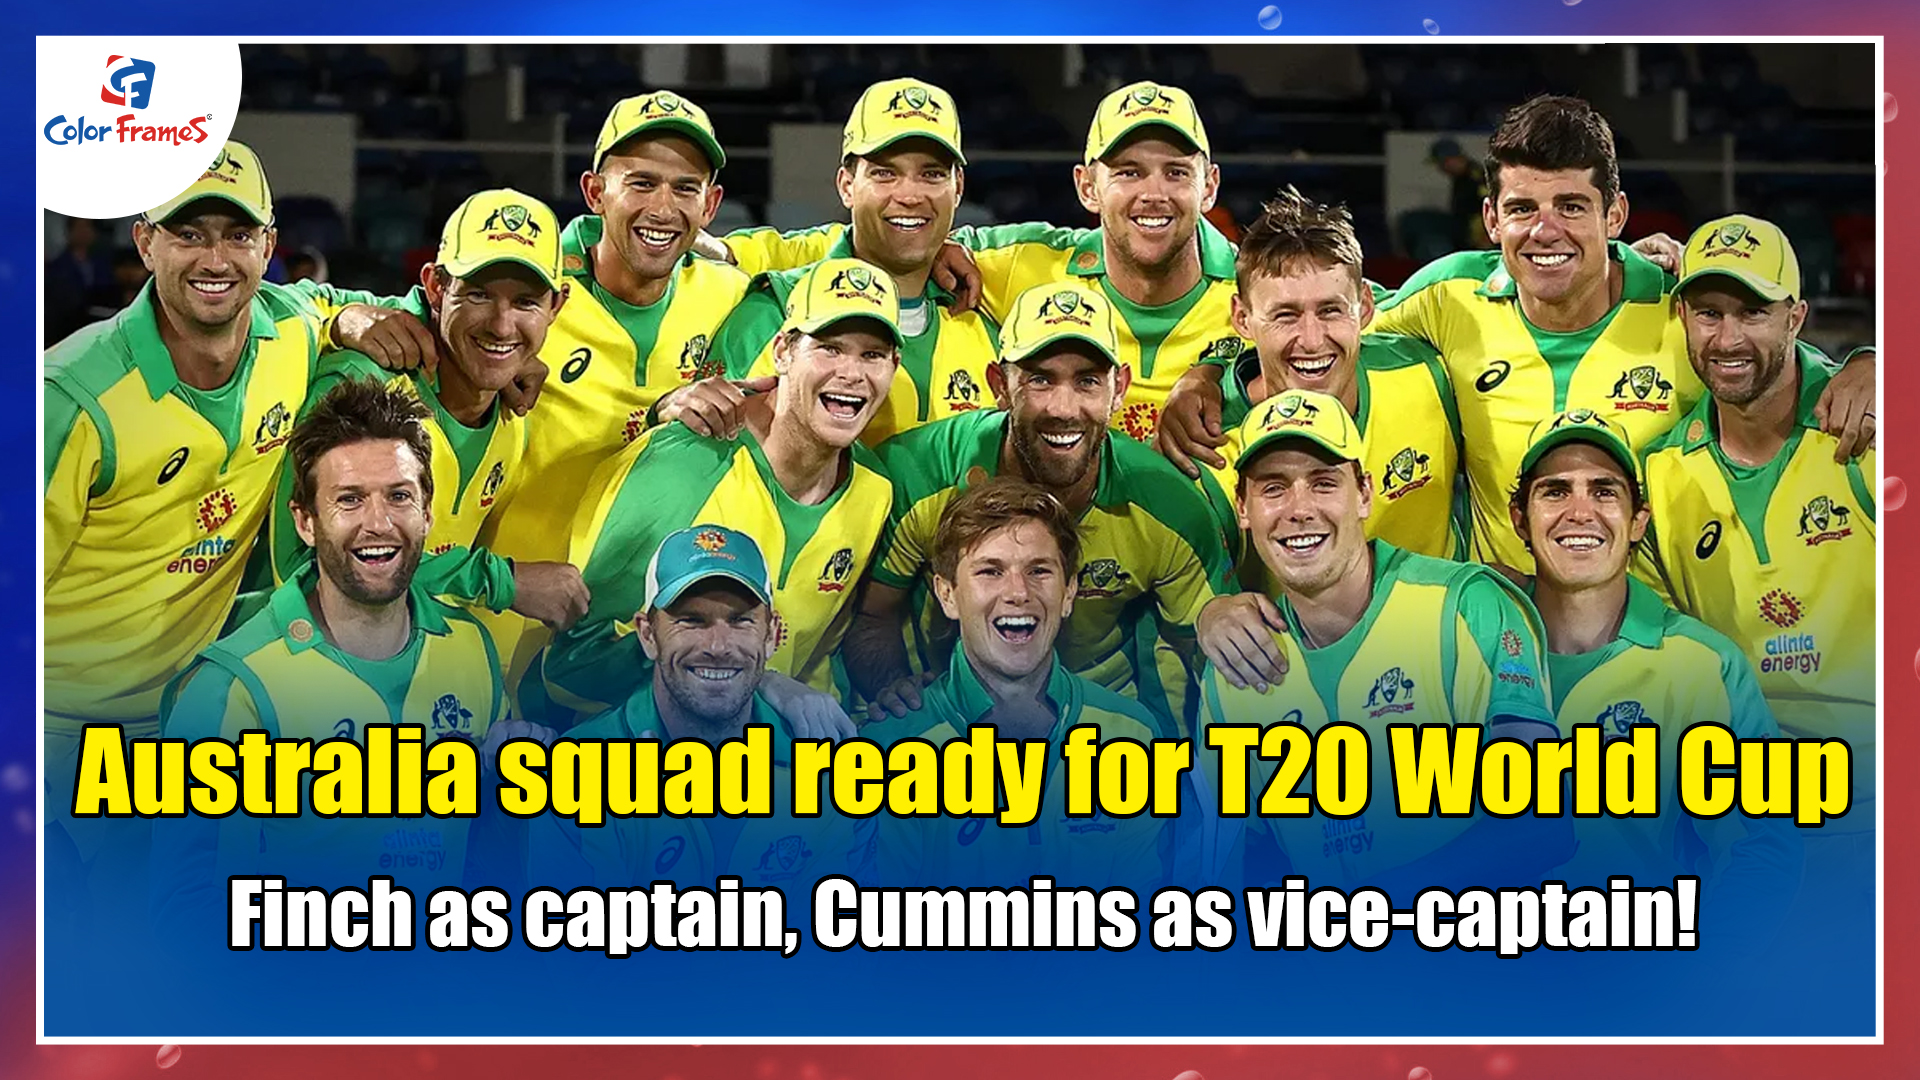 Australia squad ready for T20 World Cup - Finch as captain, Cummins as vice-captain!